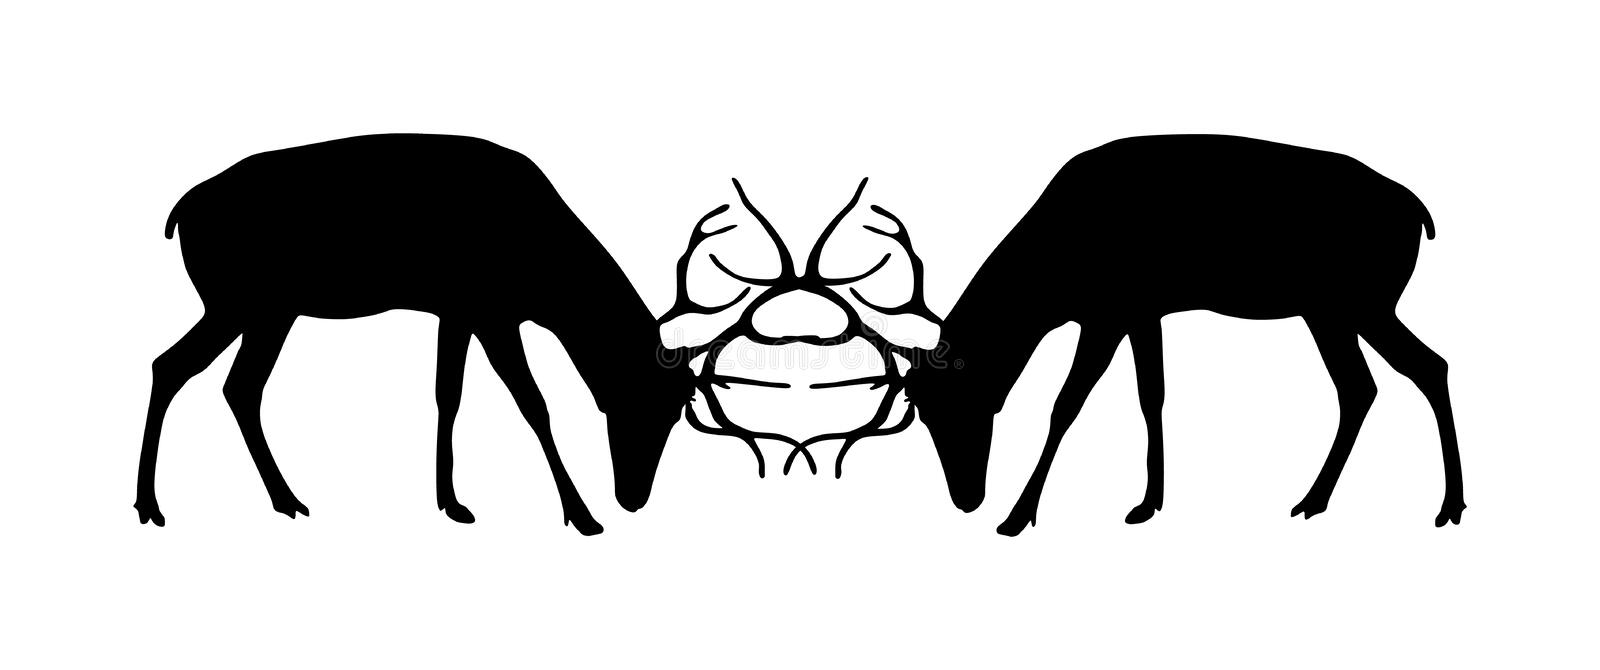 Deer battle  silhouette illustration isolated on white background.  Red deer fighting for female. Struggle in forest. royalty free illustration